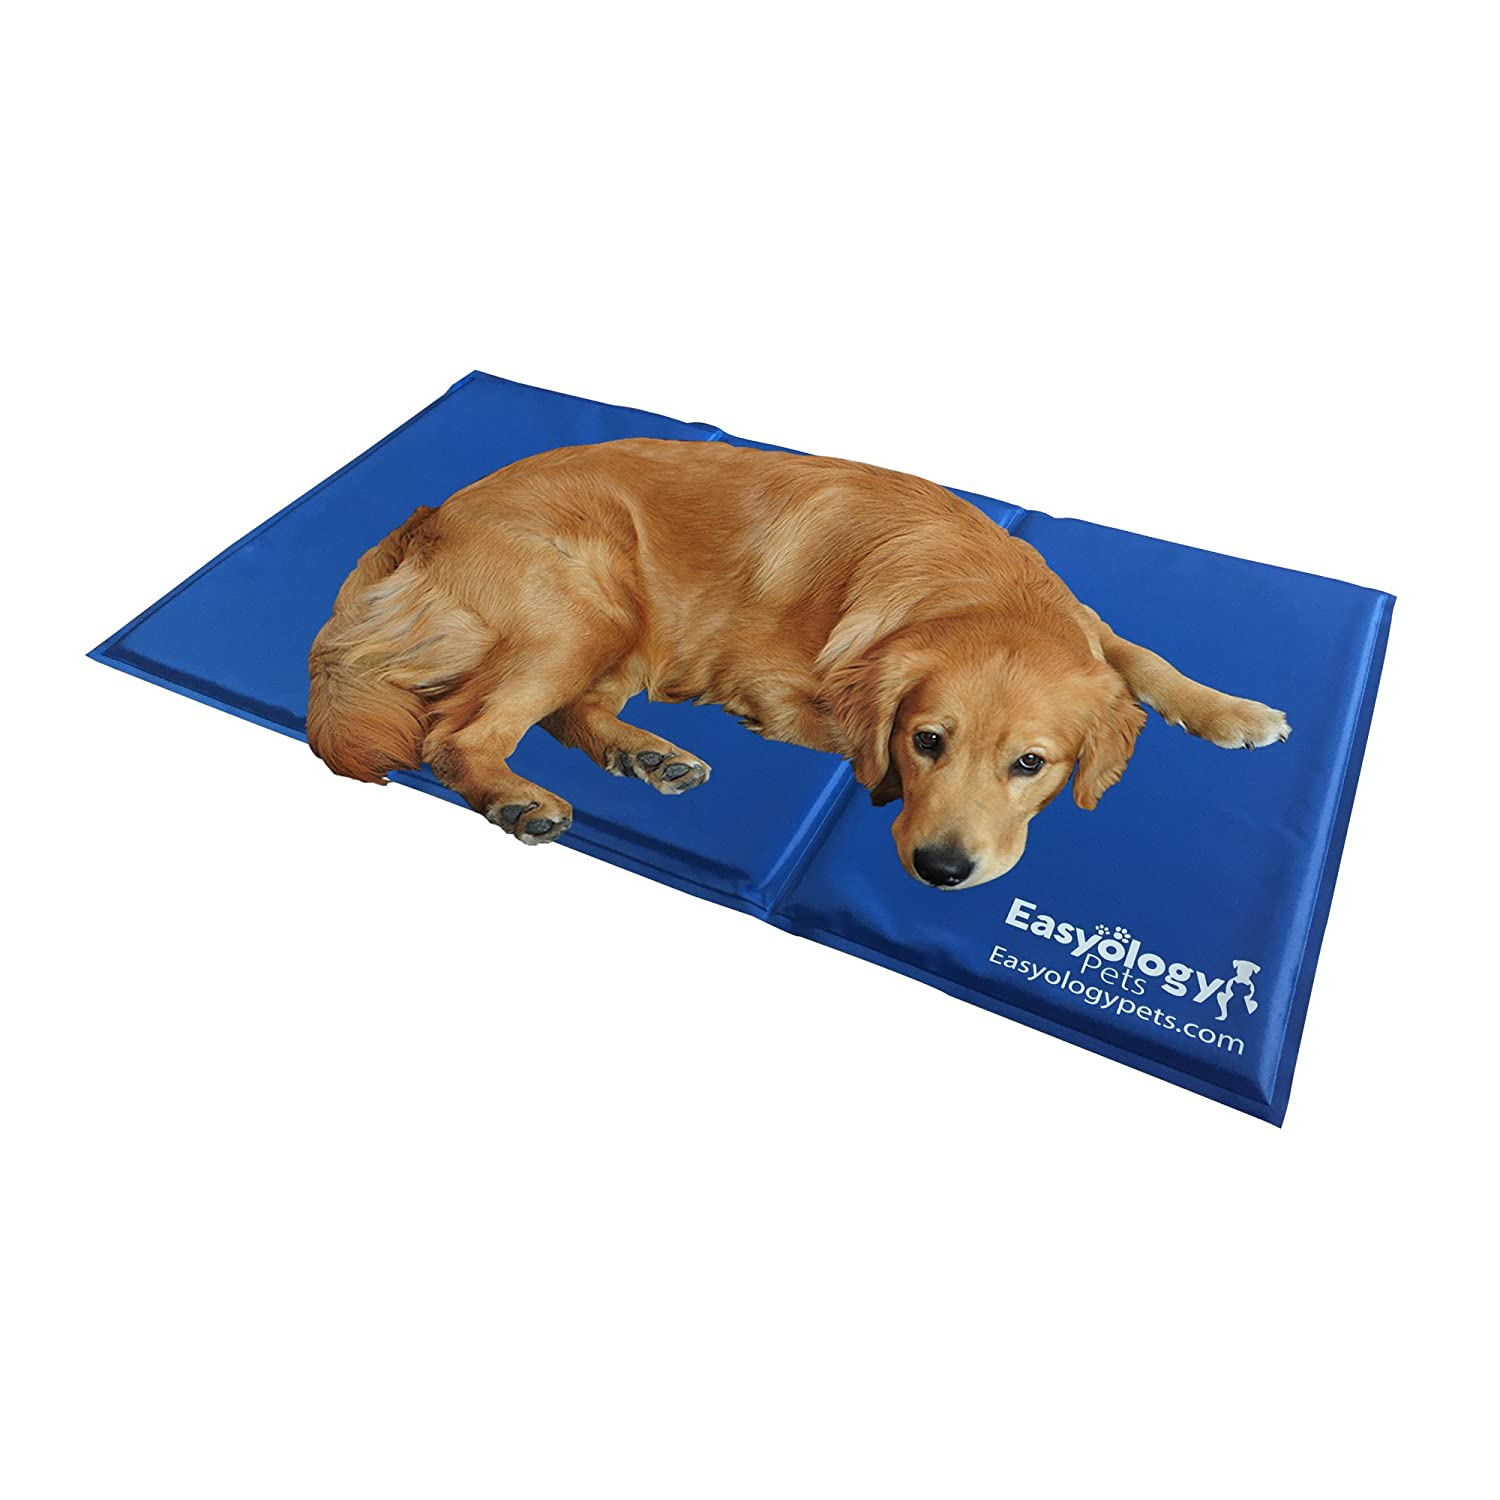 Jumbo Pet Cooling Mat - Cold Gel Pad For Cats and Dogs - Best For Keeping Large Pets Cool - Perfect Size For Couch - Fits The Easyology Premium Pet Warming and Cooling Bed